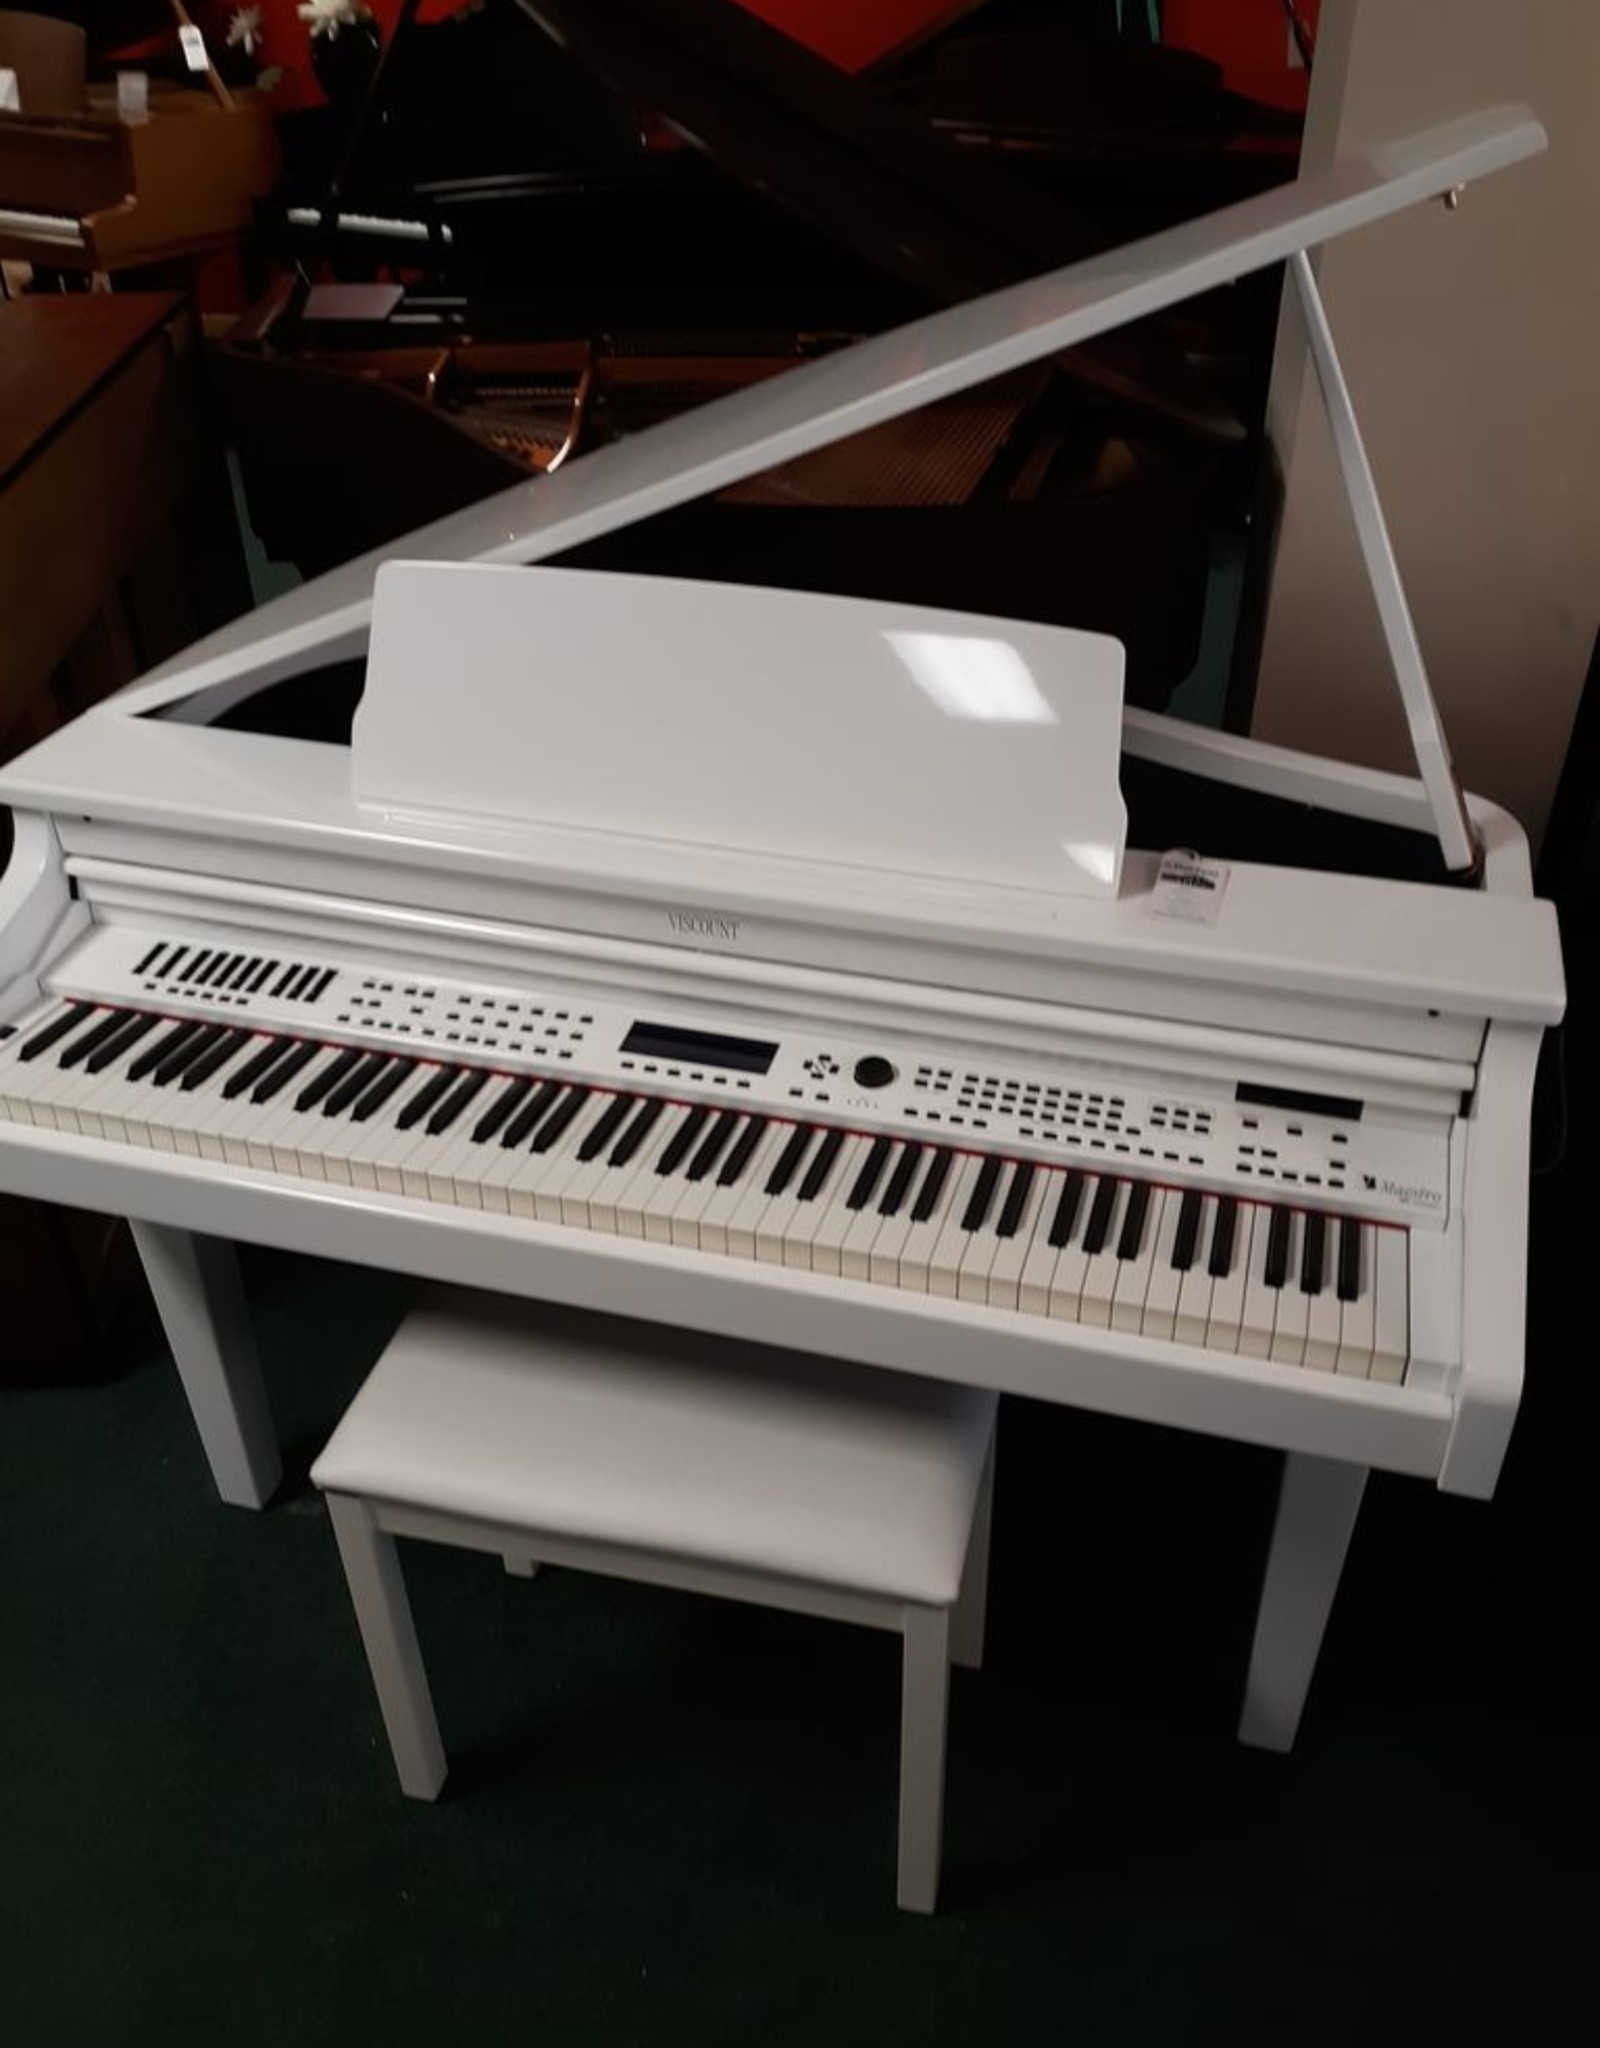 Viscount Viscount Maestro Digital Grand Piano (High Polished White) (pre-owned)